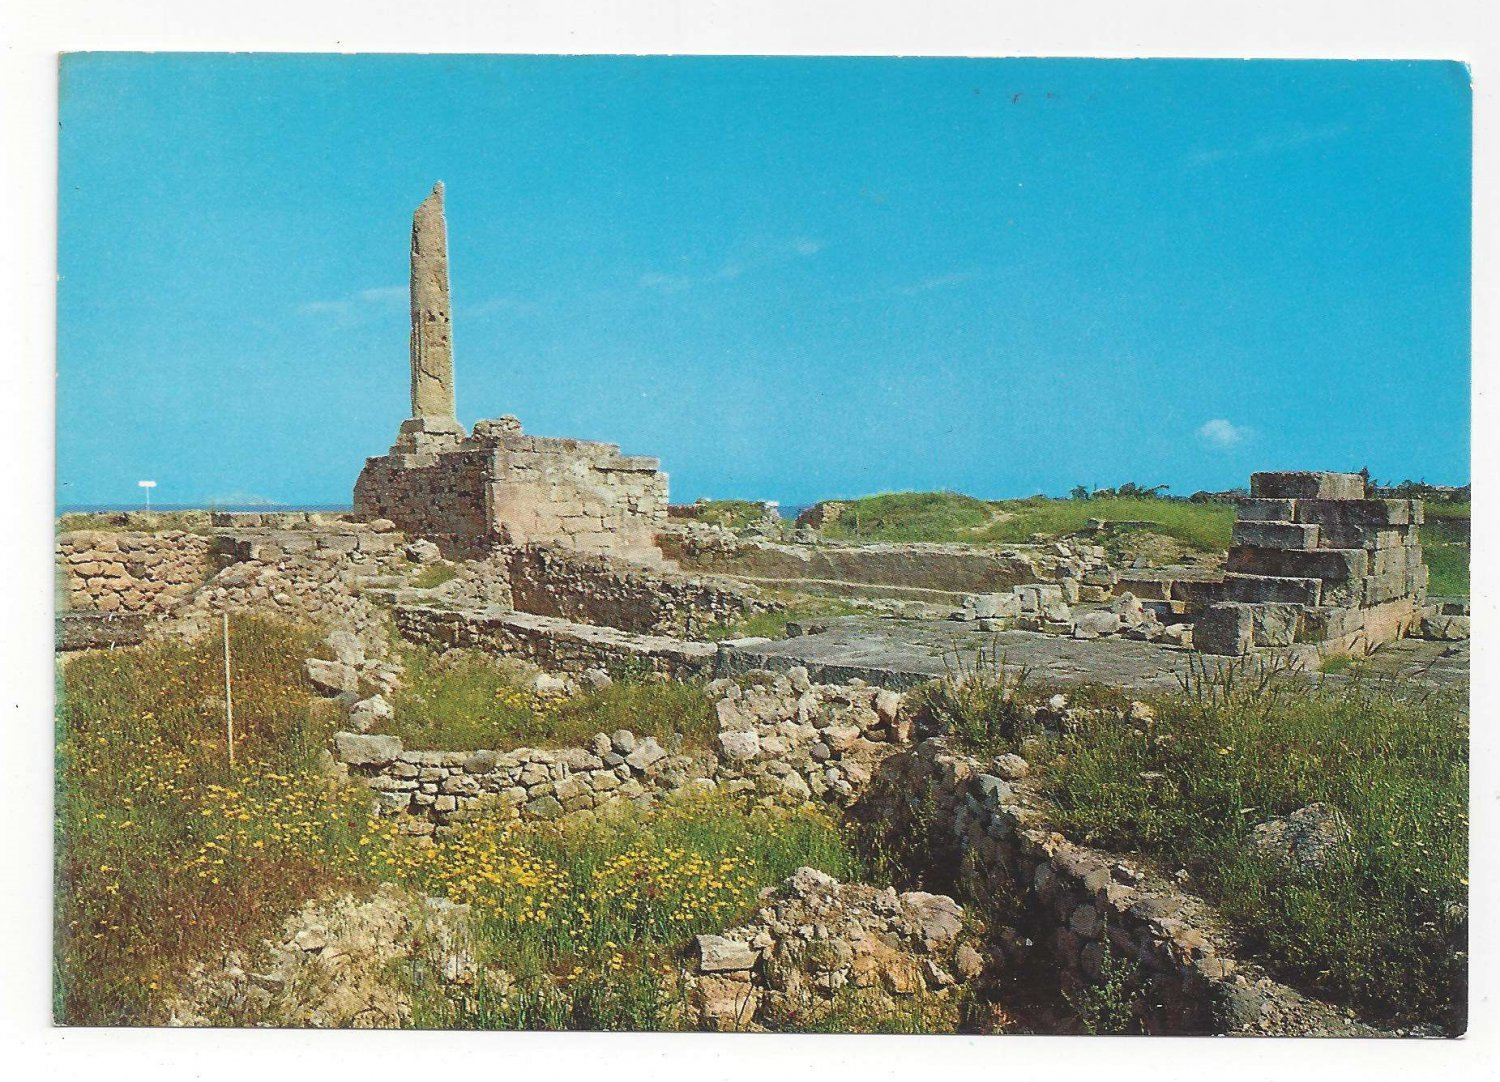 Greece Aigina Aegina Temple of Apollo Vtg Postcard 4X6